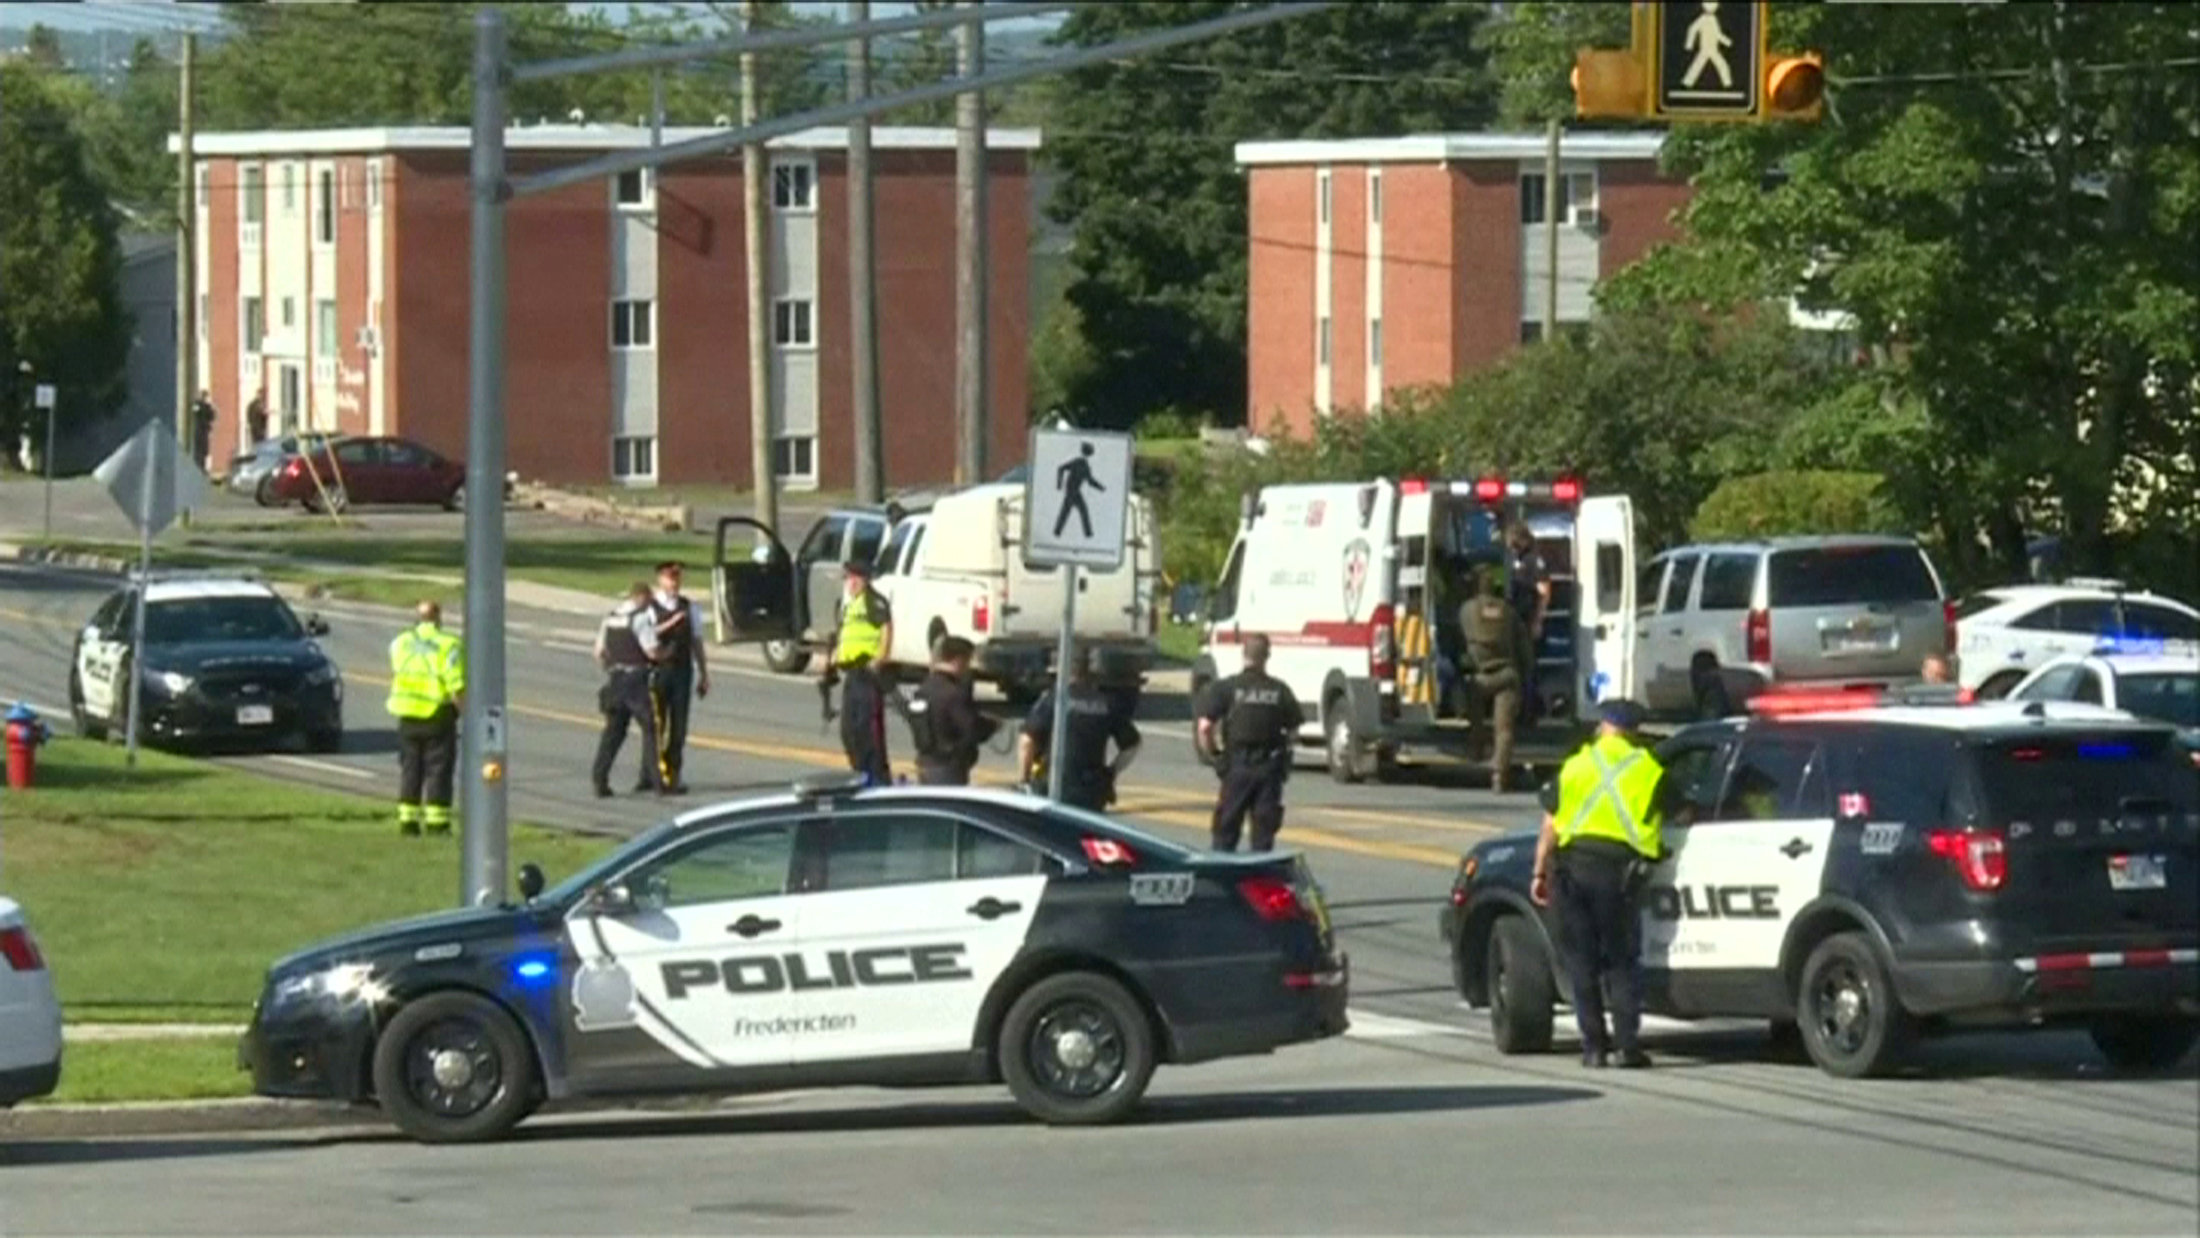 A still image taken from video of the scene of a fatal shooting in Fredricton, New Brunswick